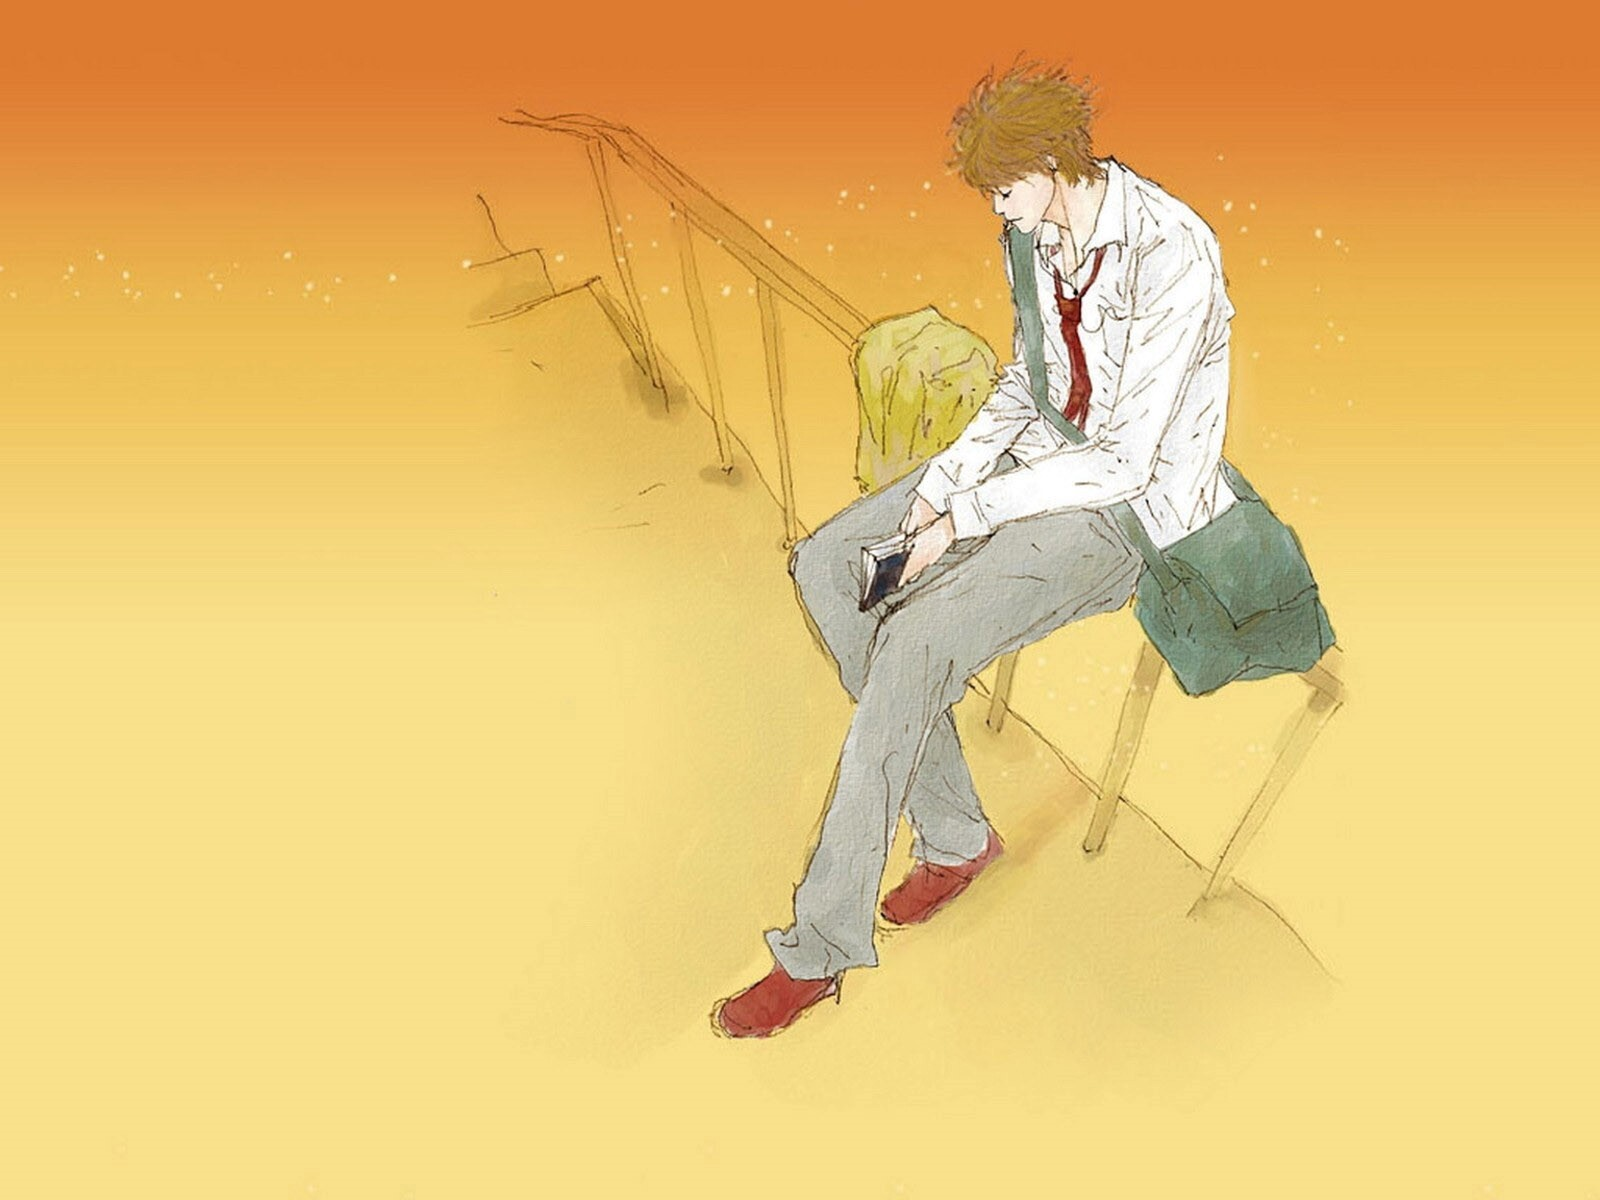 A Boy Waiting For Someone Drawing Wallpapers Hd Wallpapers